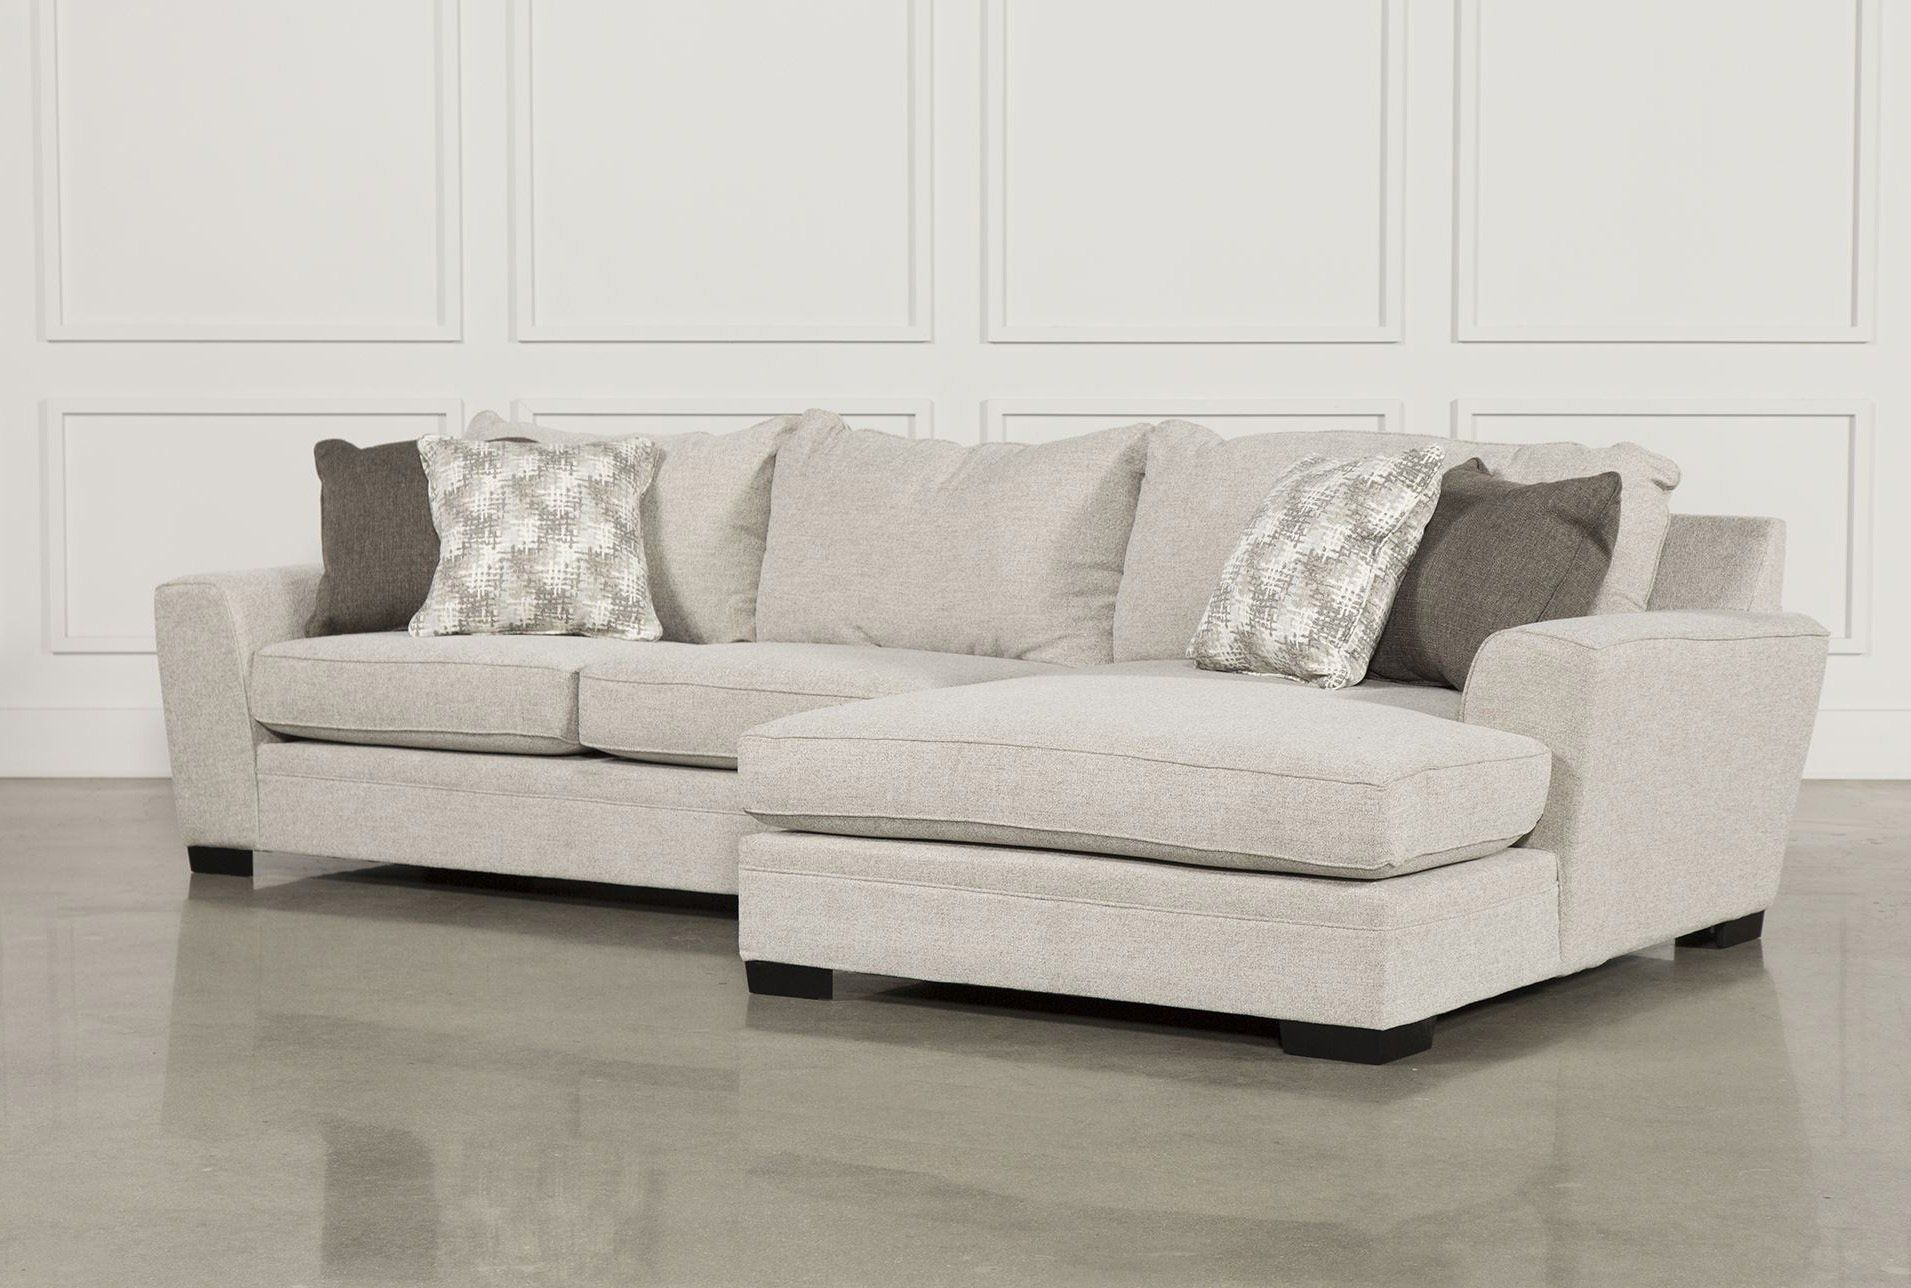 Delano 2 Piece Sectional W/raf Oversized Chaise | Products In Aspen 2 Piece Sleeper Sectionals With Laf Chaise (Image 11 of 25)